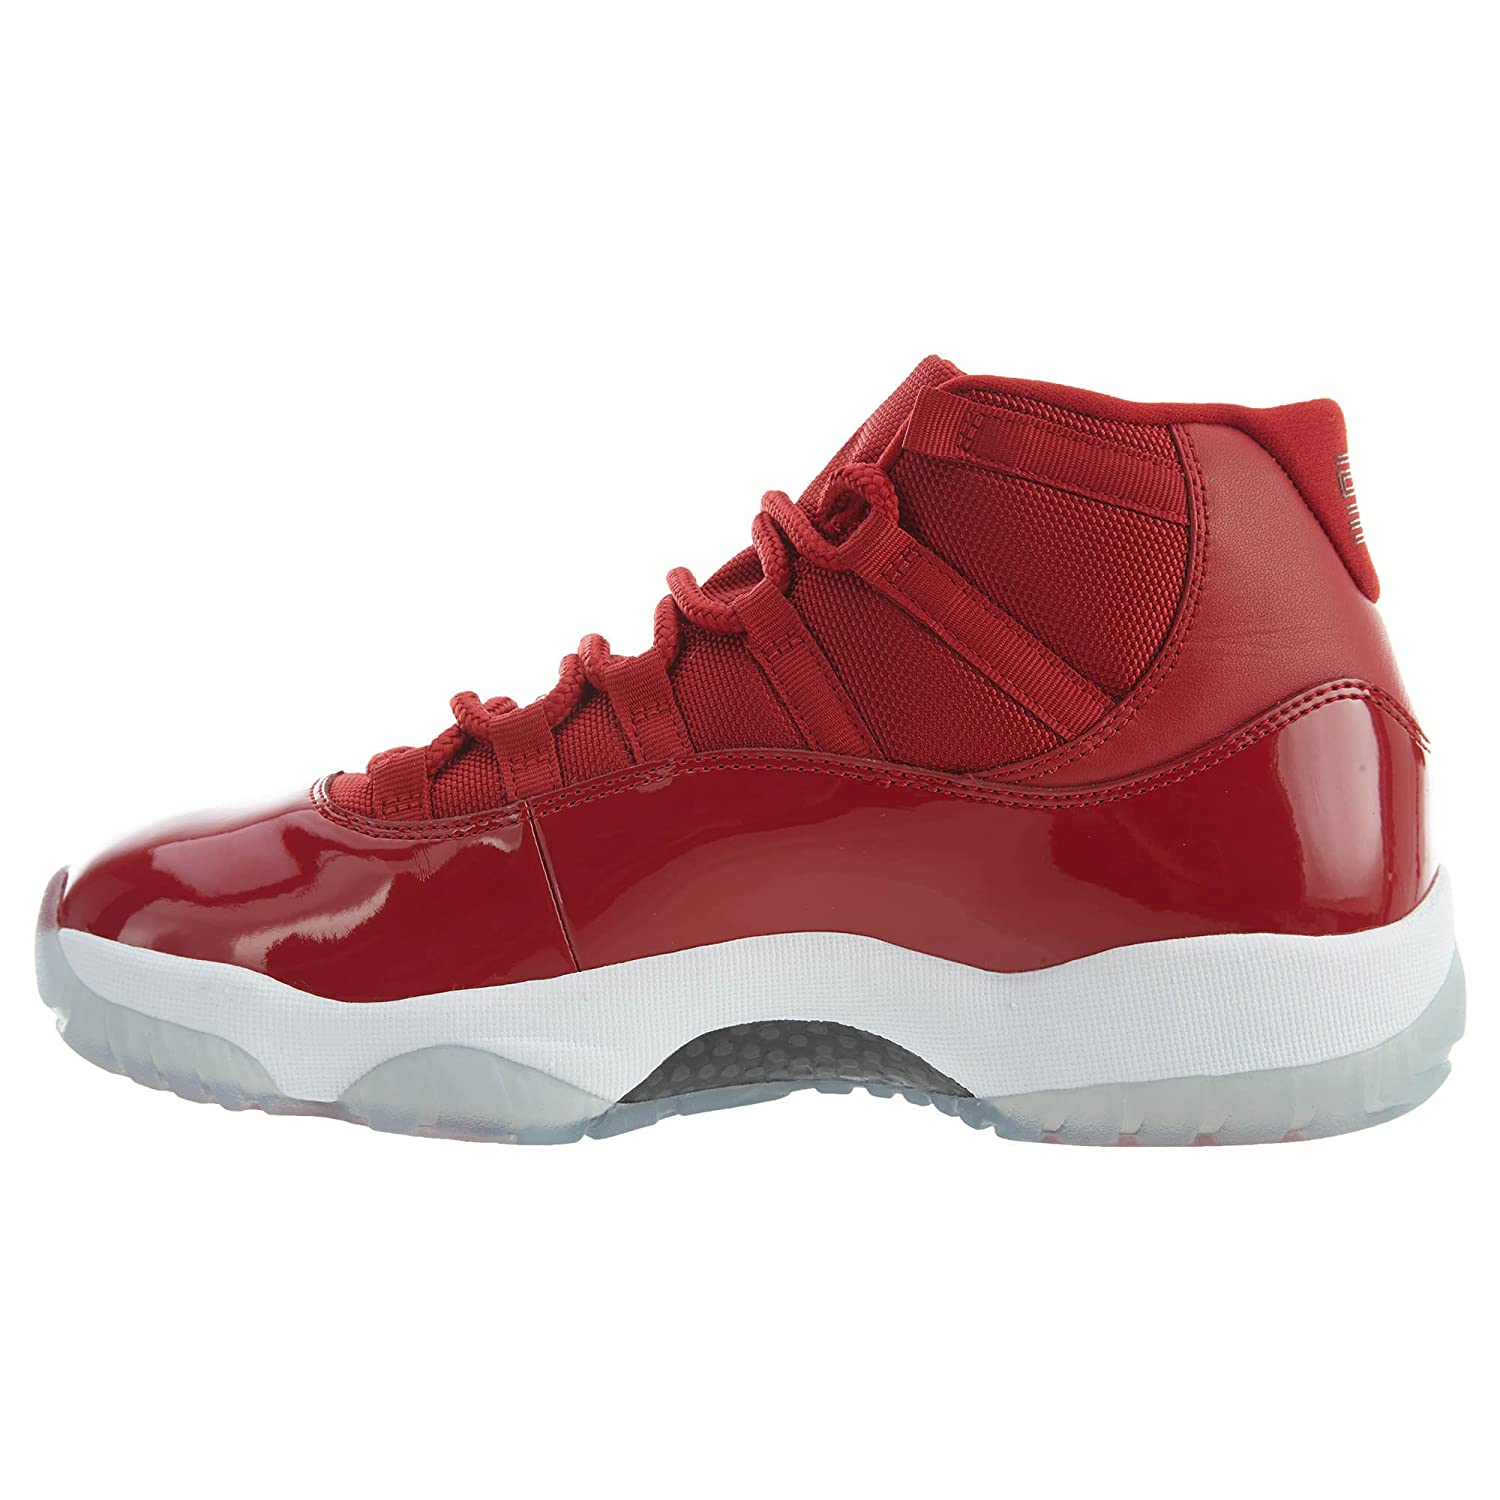 new concept 2b2a0 5e385 Amazon.com   Air Jordan 11 Retro